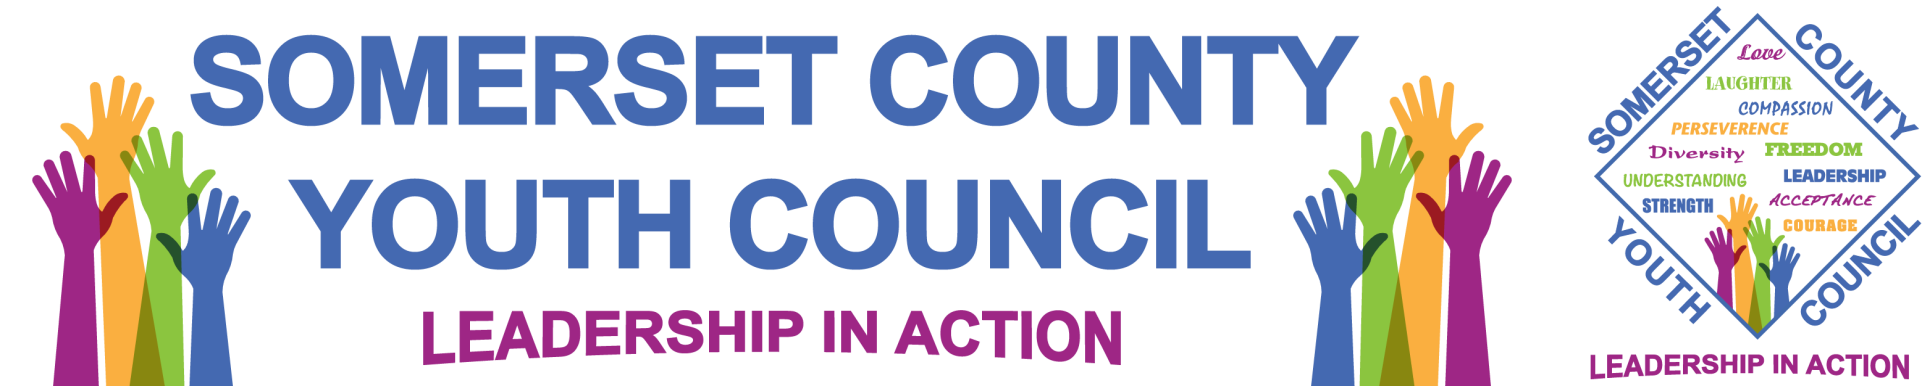 Youth Council Banner